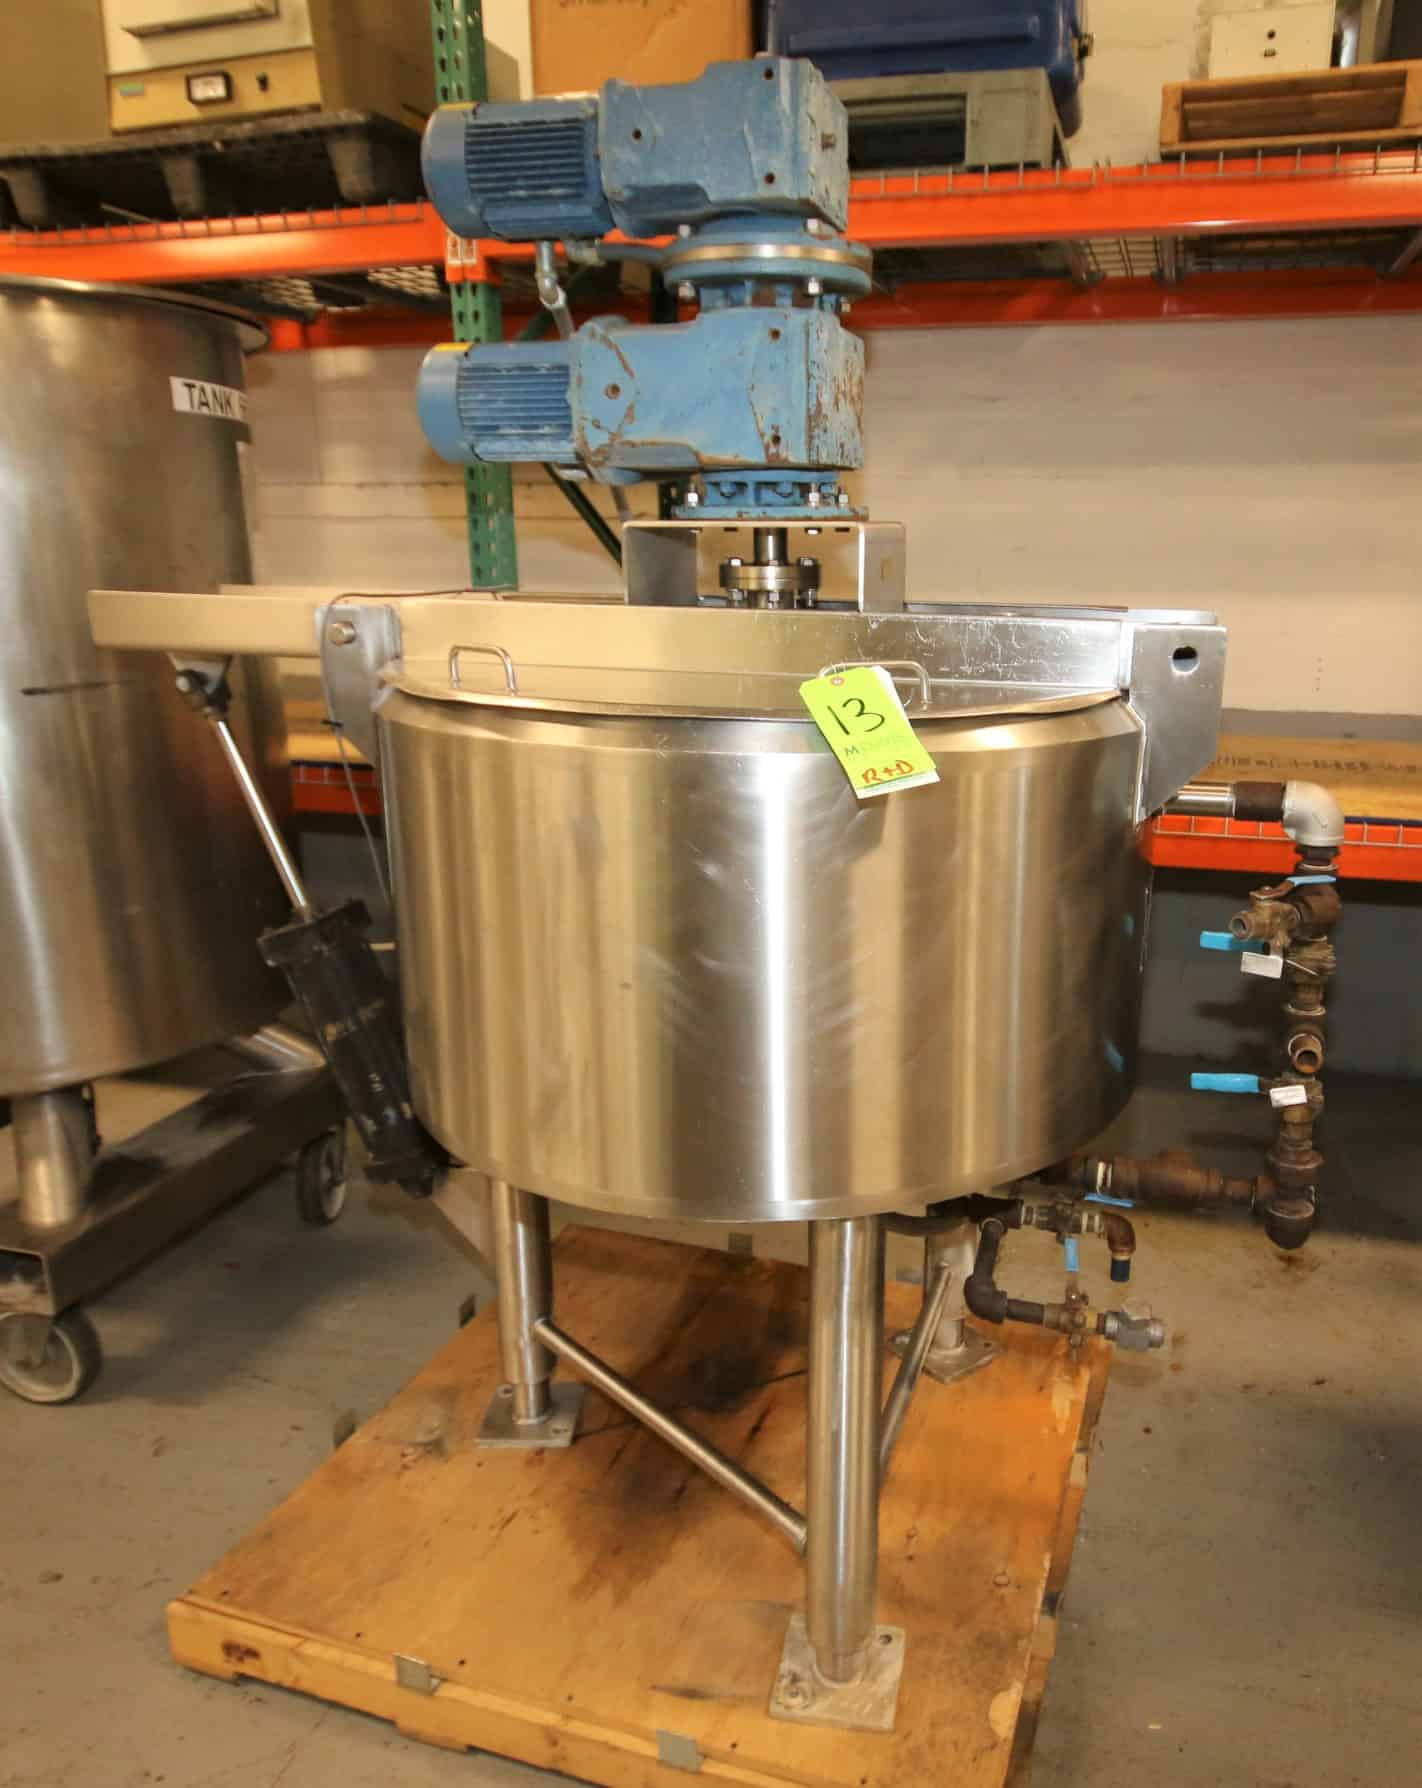 "Cherry Burrel Aprox. 75 Gal Hinged Lid S/S Processor / Kettle, SN E-458-90, with Dual Motion Agitator with Scrape Surface, SEW 1 hp @ 1760 rpm Drive Motors, Pneumatic Bridge, S/S Bottom, S/S Legs, 230/460 V 3 Phase, max working psi 150 psi @ 400 degree F, (Overall Diam. - 66"" W x 78"" H)"